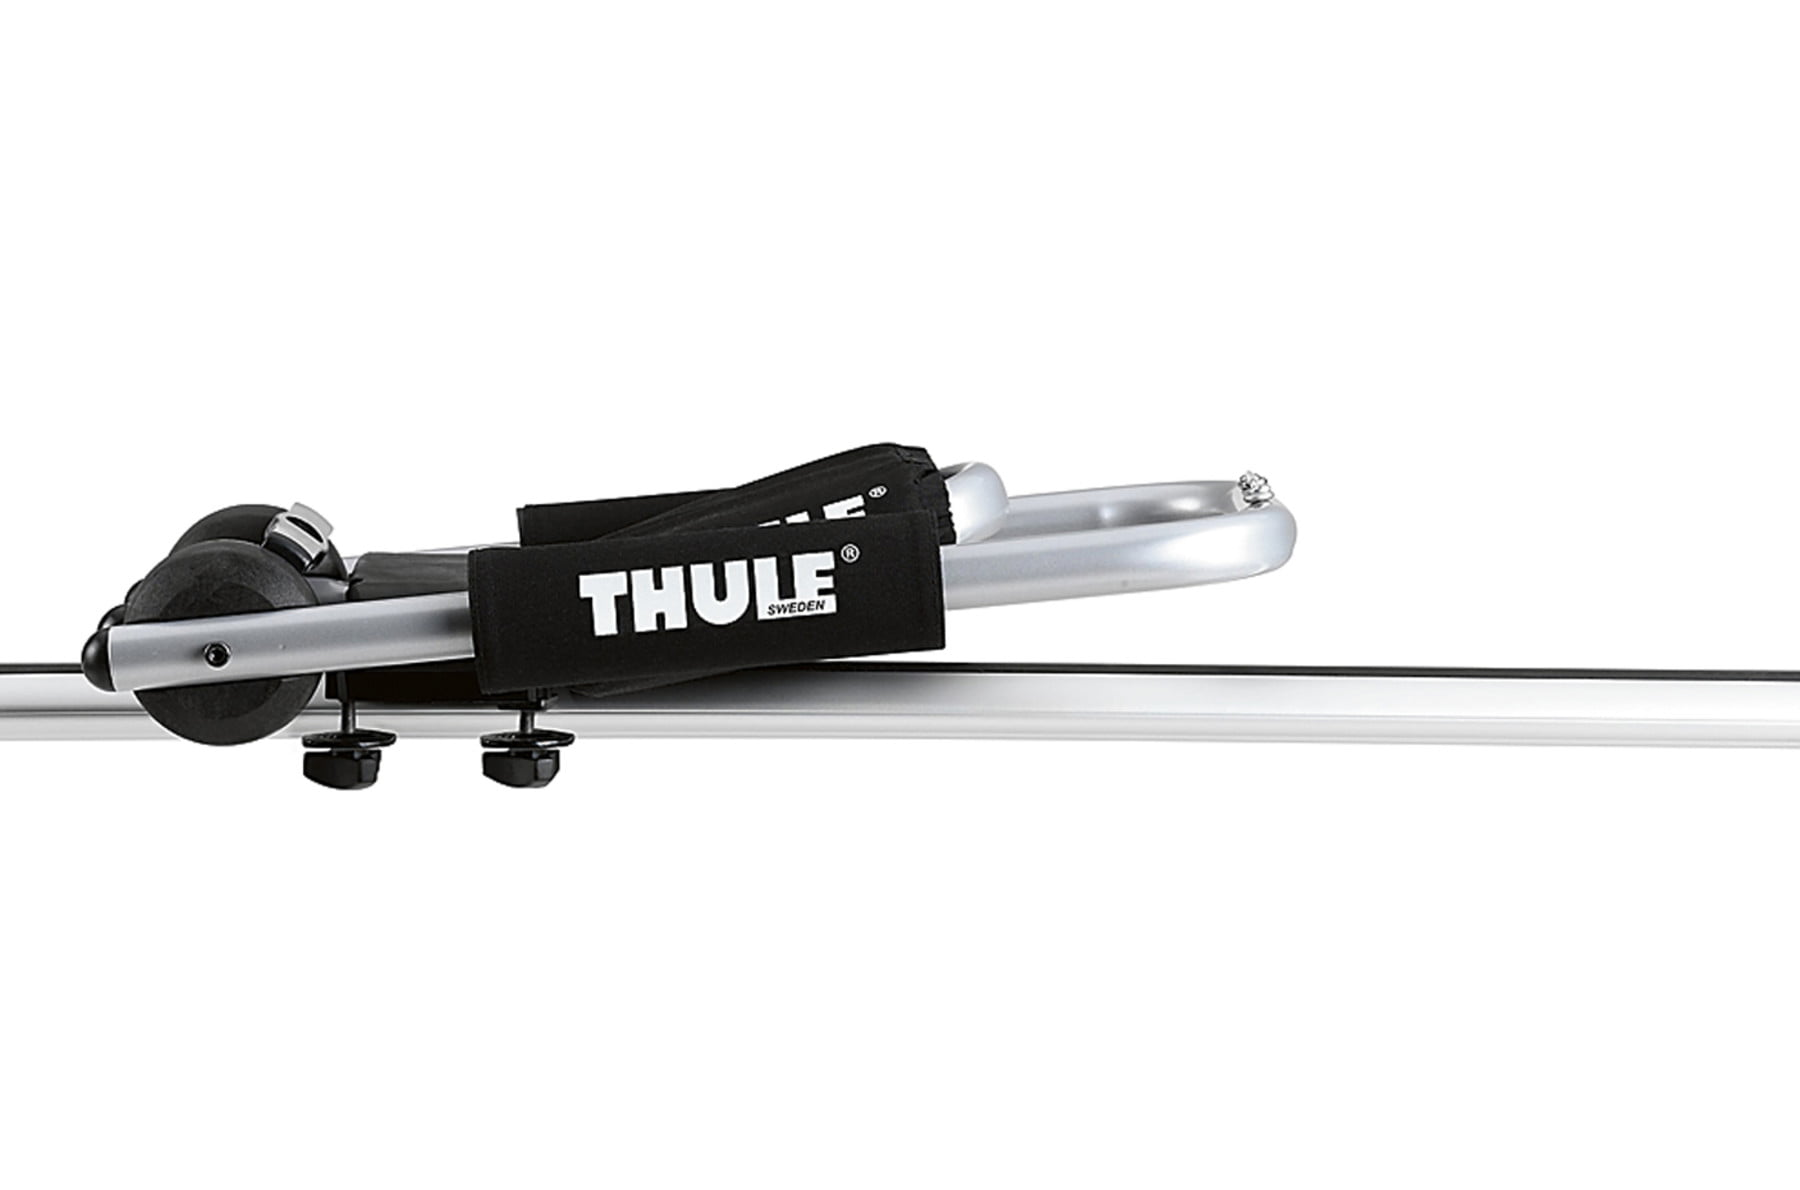 Suport transport caiac Thule Hull a Port 837 3